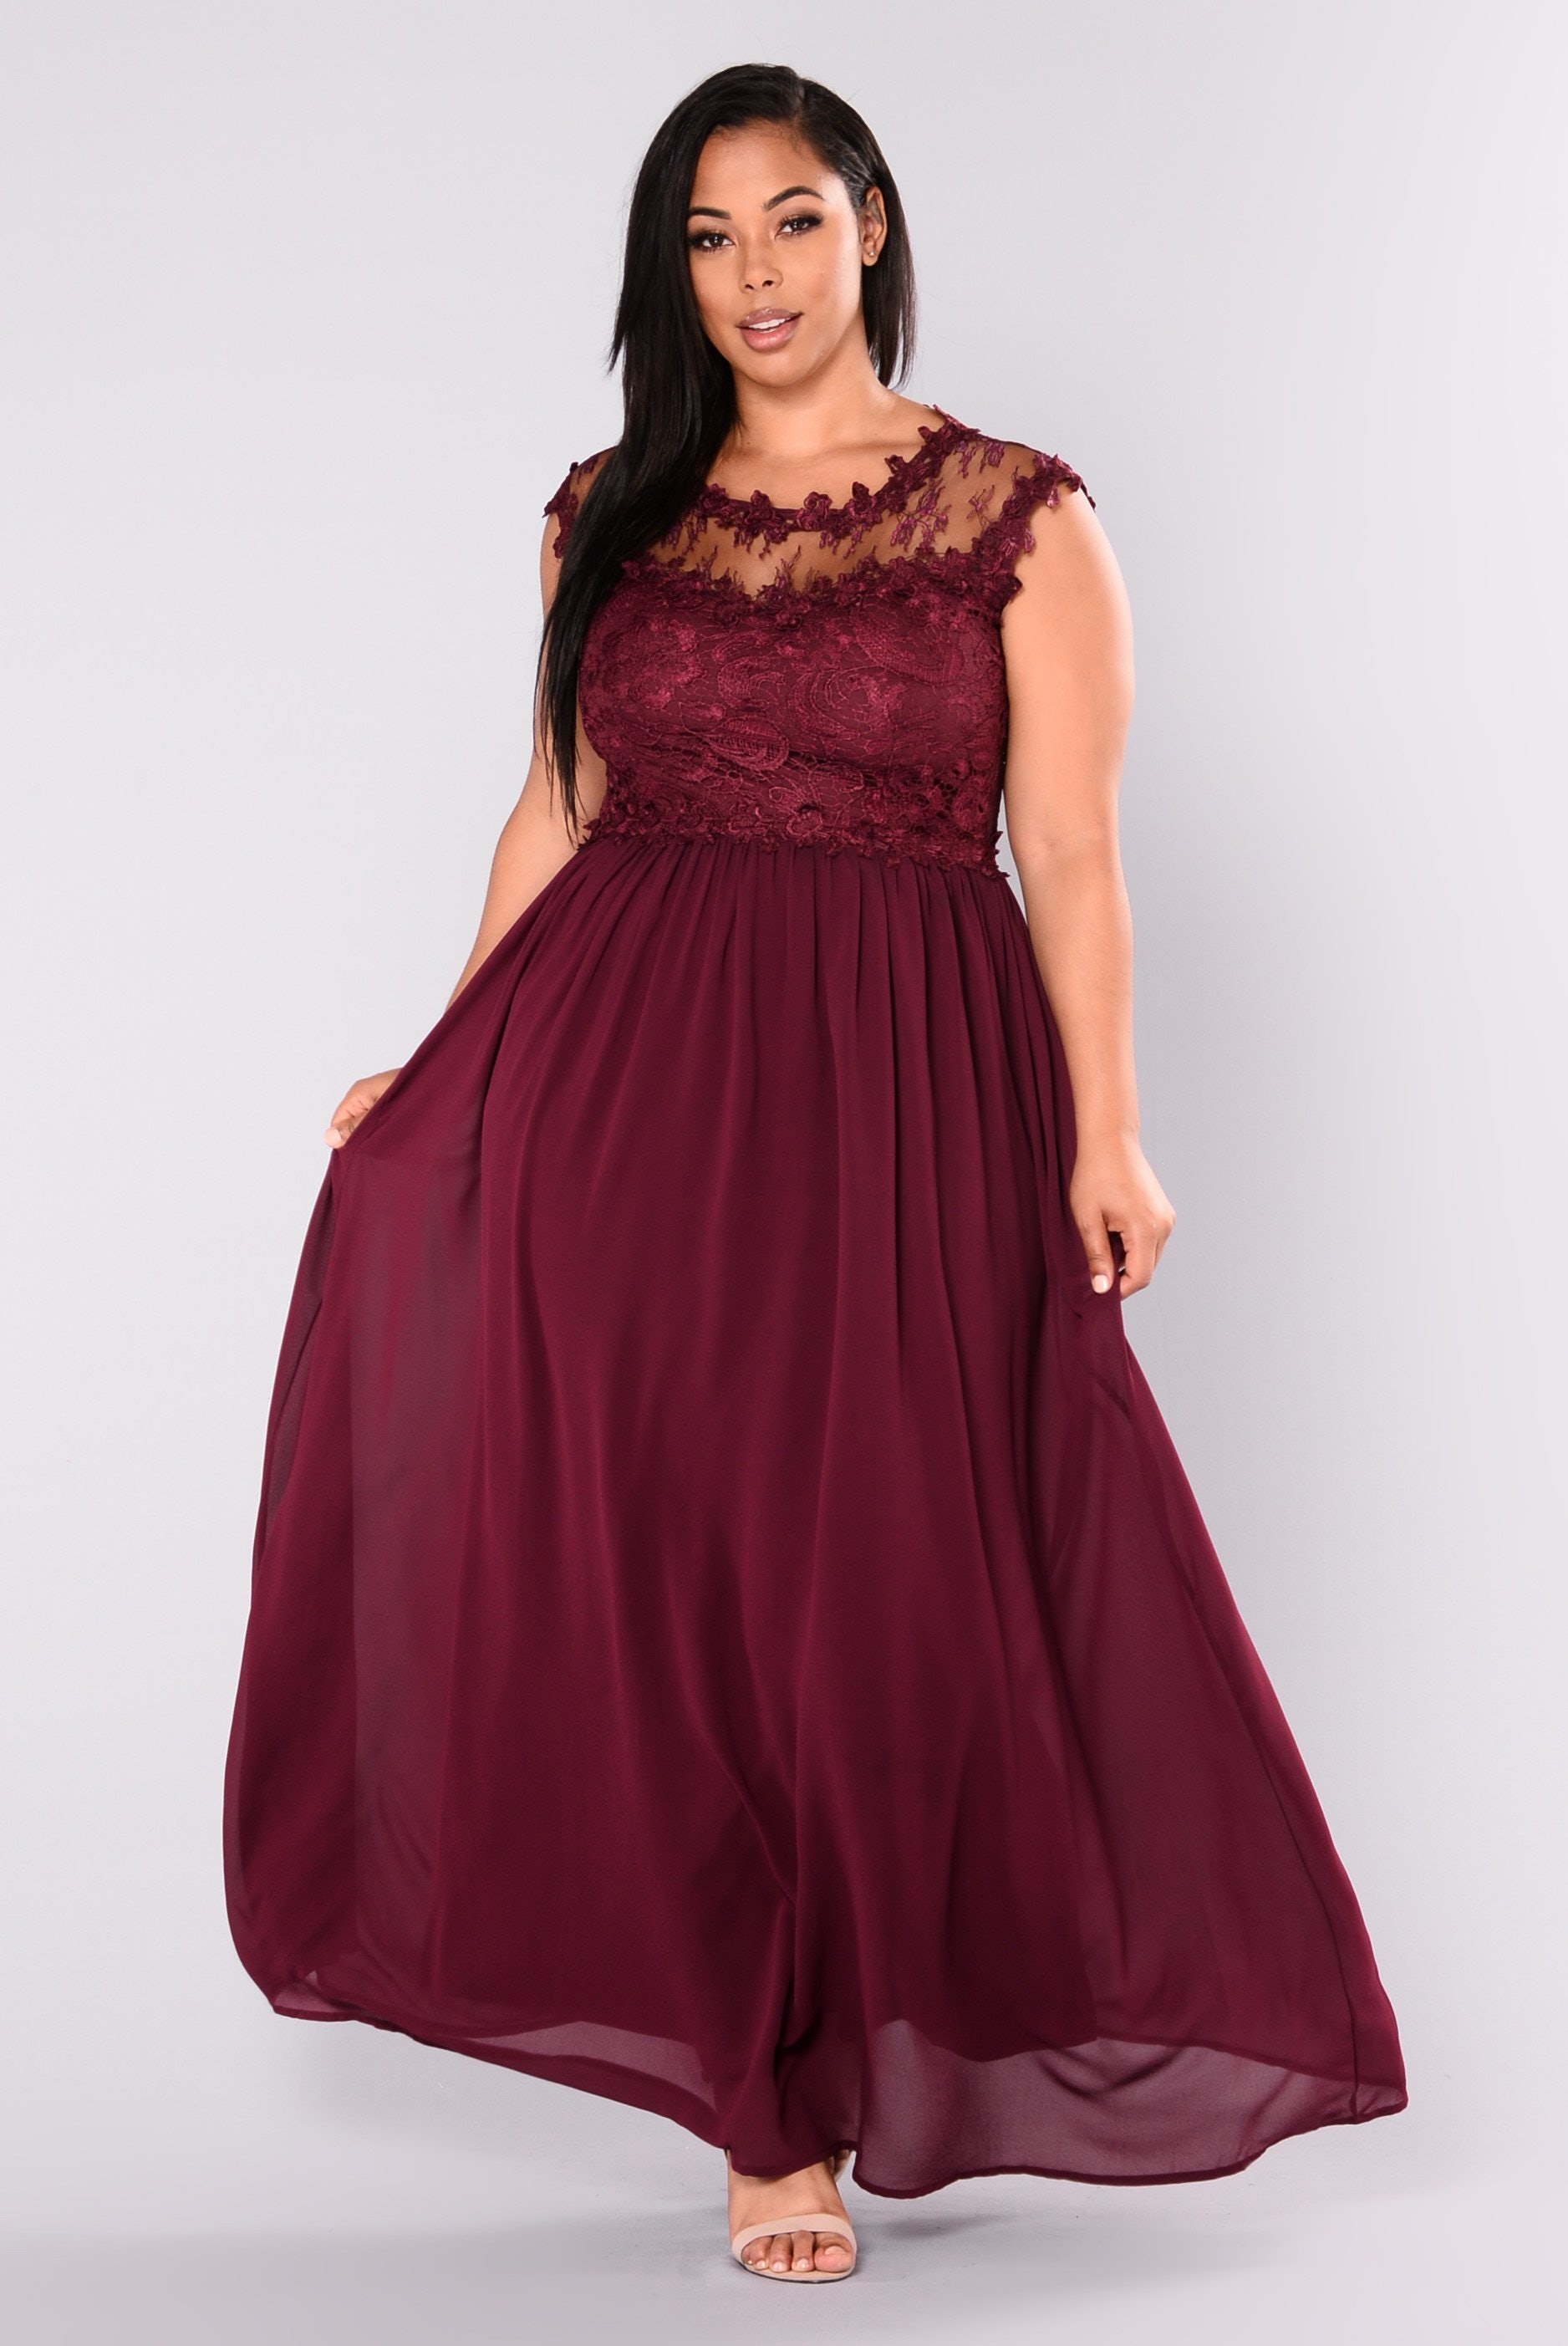 a32b5957485 57 Plus-Size Holiday Dresses That Will Make You Look Forward To Seeing Your  Family